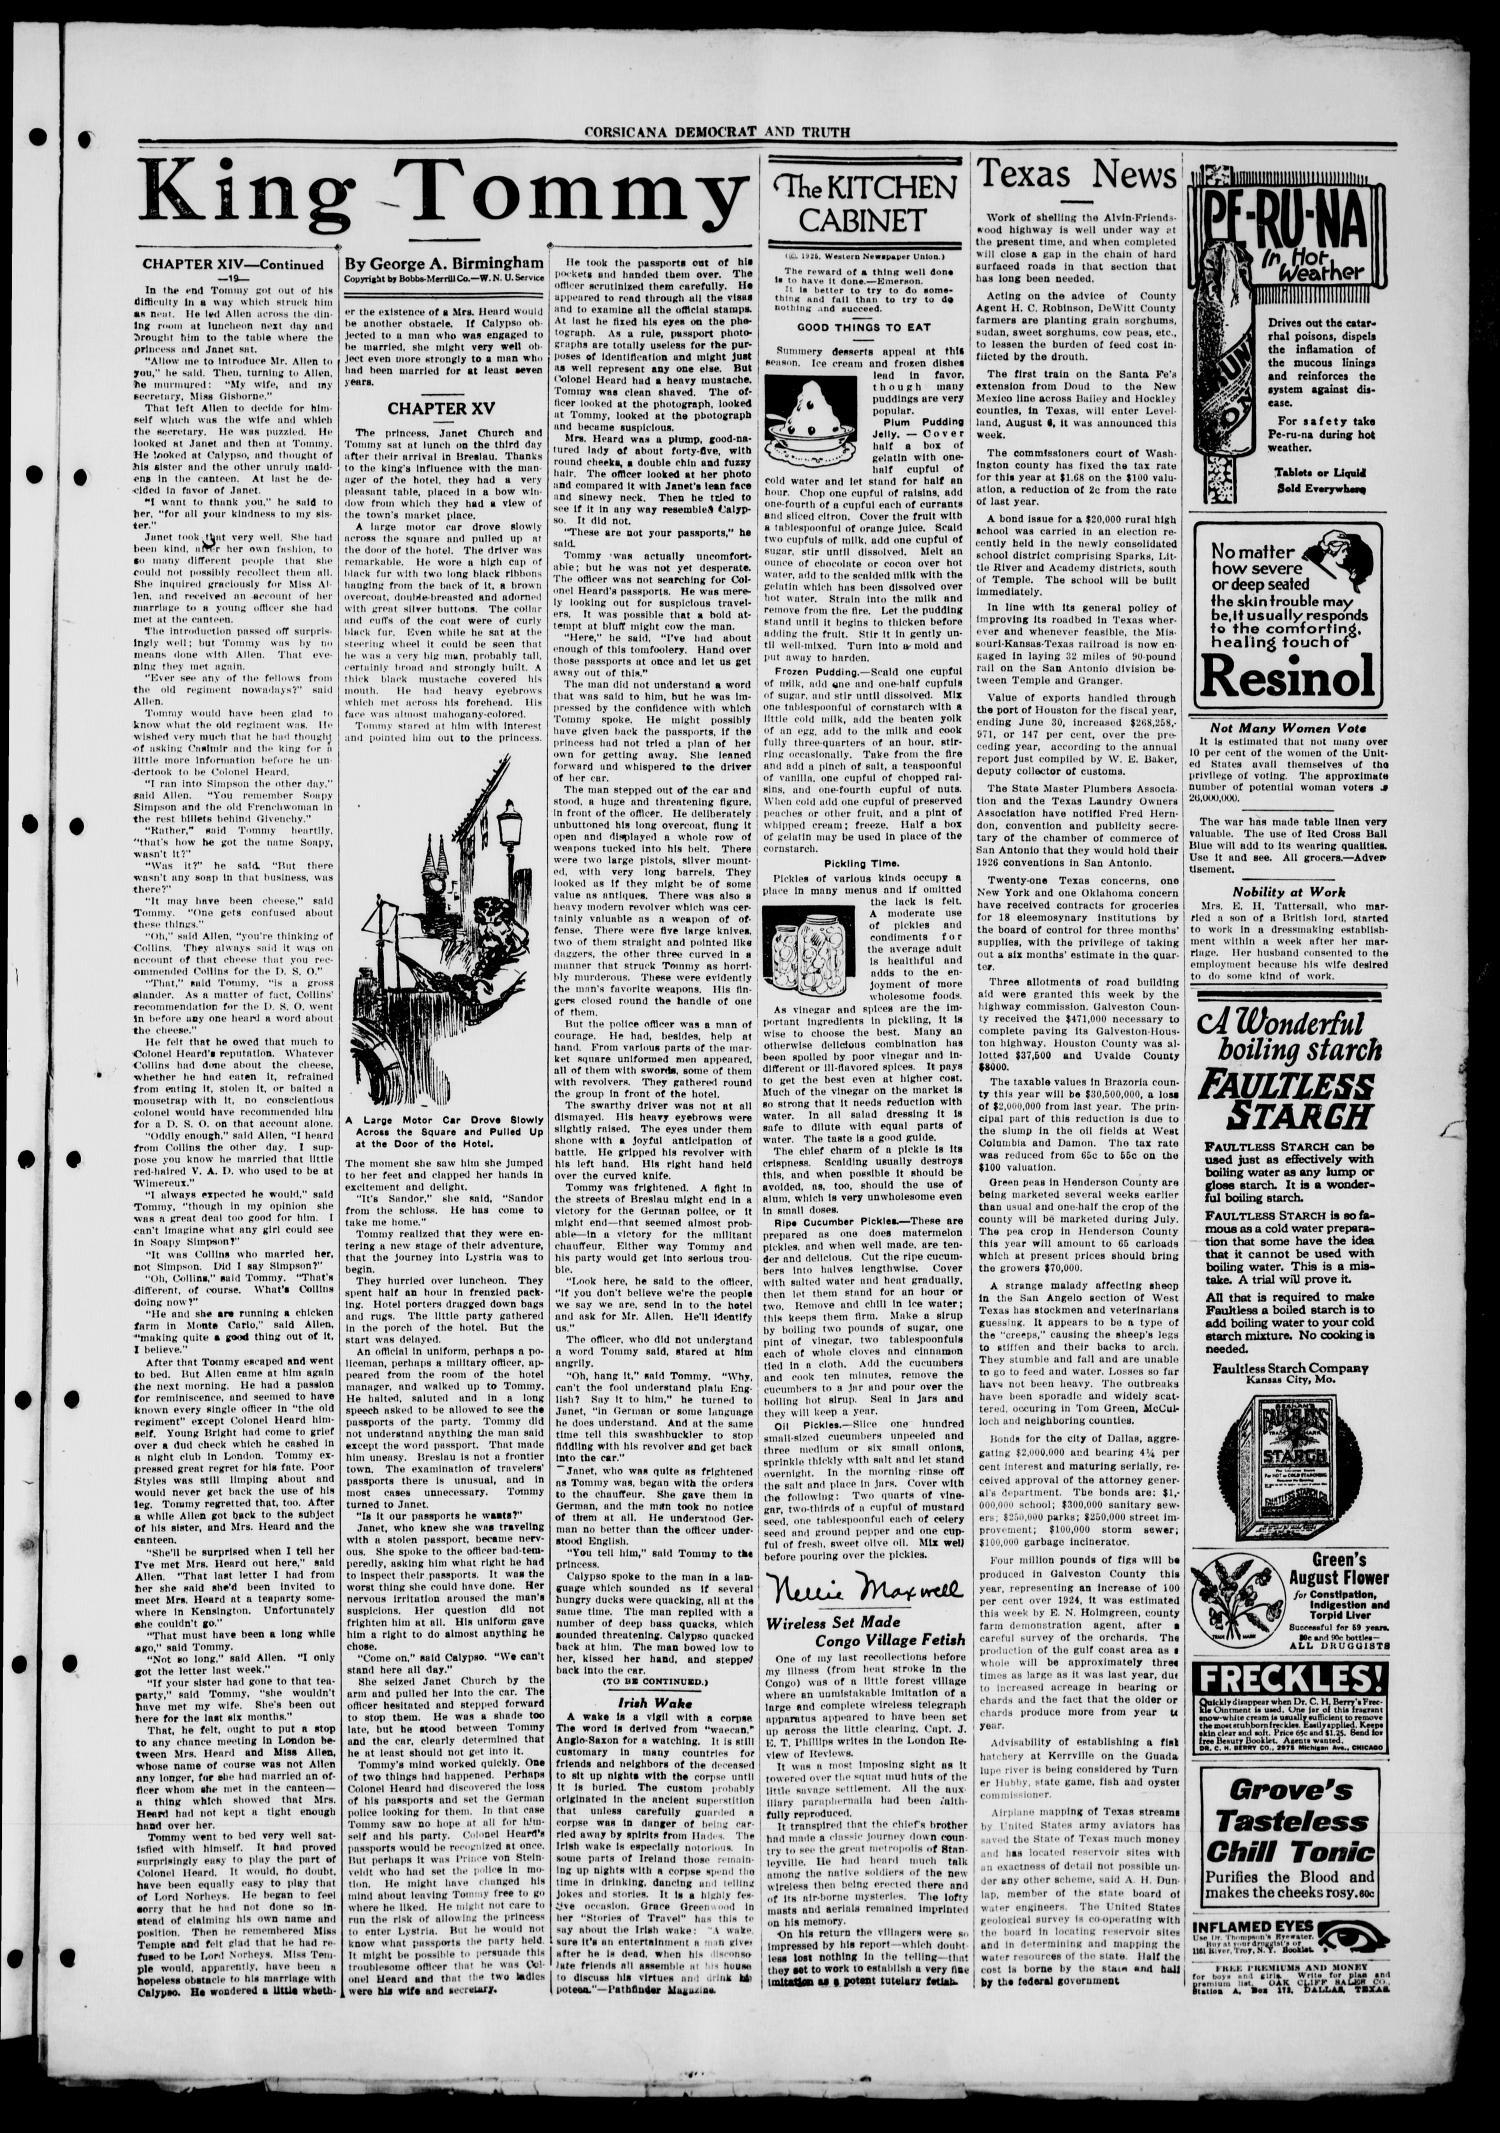 Corsicana Democrat and Truth (Corsicana, Tex.), Vol. 39, No. 31, Ed. 1 Thursday, July 23, 1925                                                                                                      [Sequence #]: 3 of 8